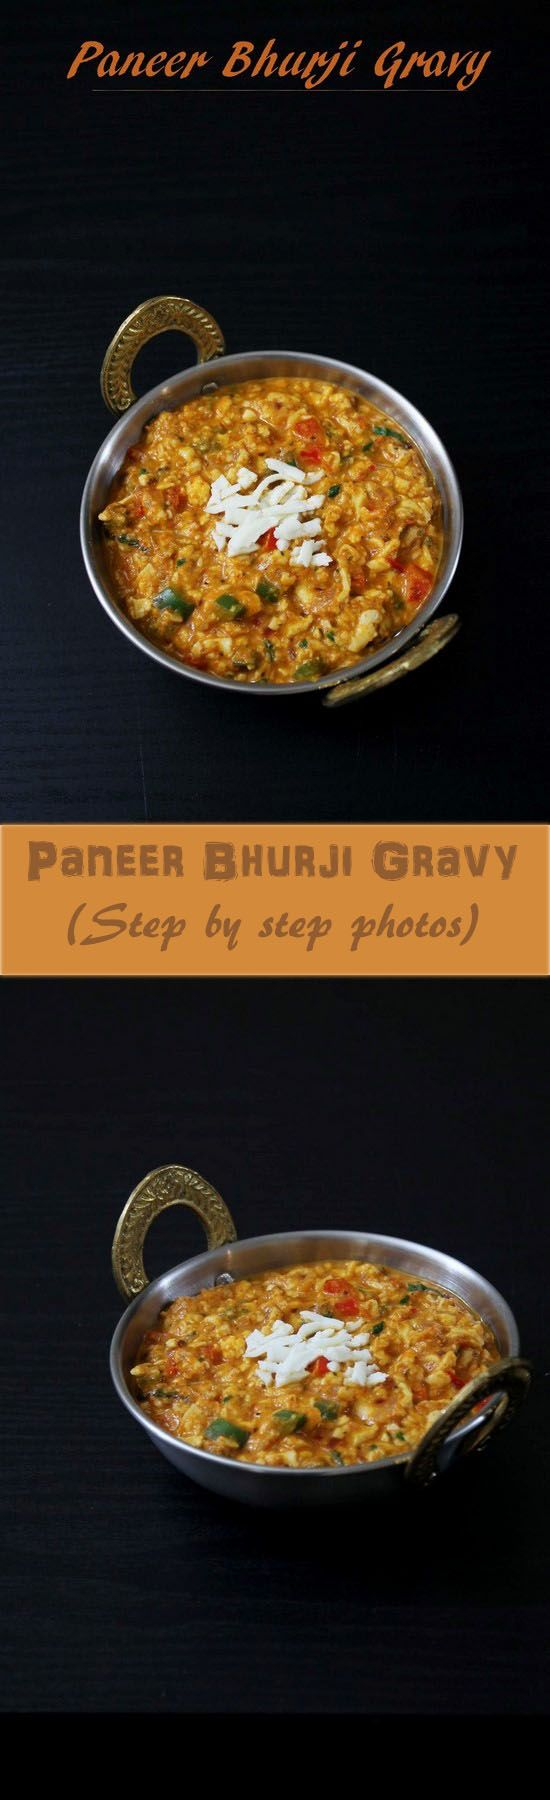 Paneer bhurji gravy recipe – grated or crumbled paneer is simmered in spicy tomato gravy. A paneer curry recipe that go well with paratha or naan.